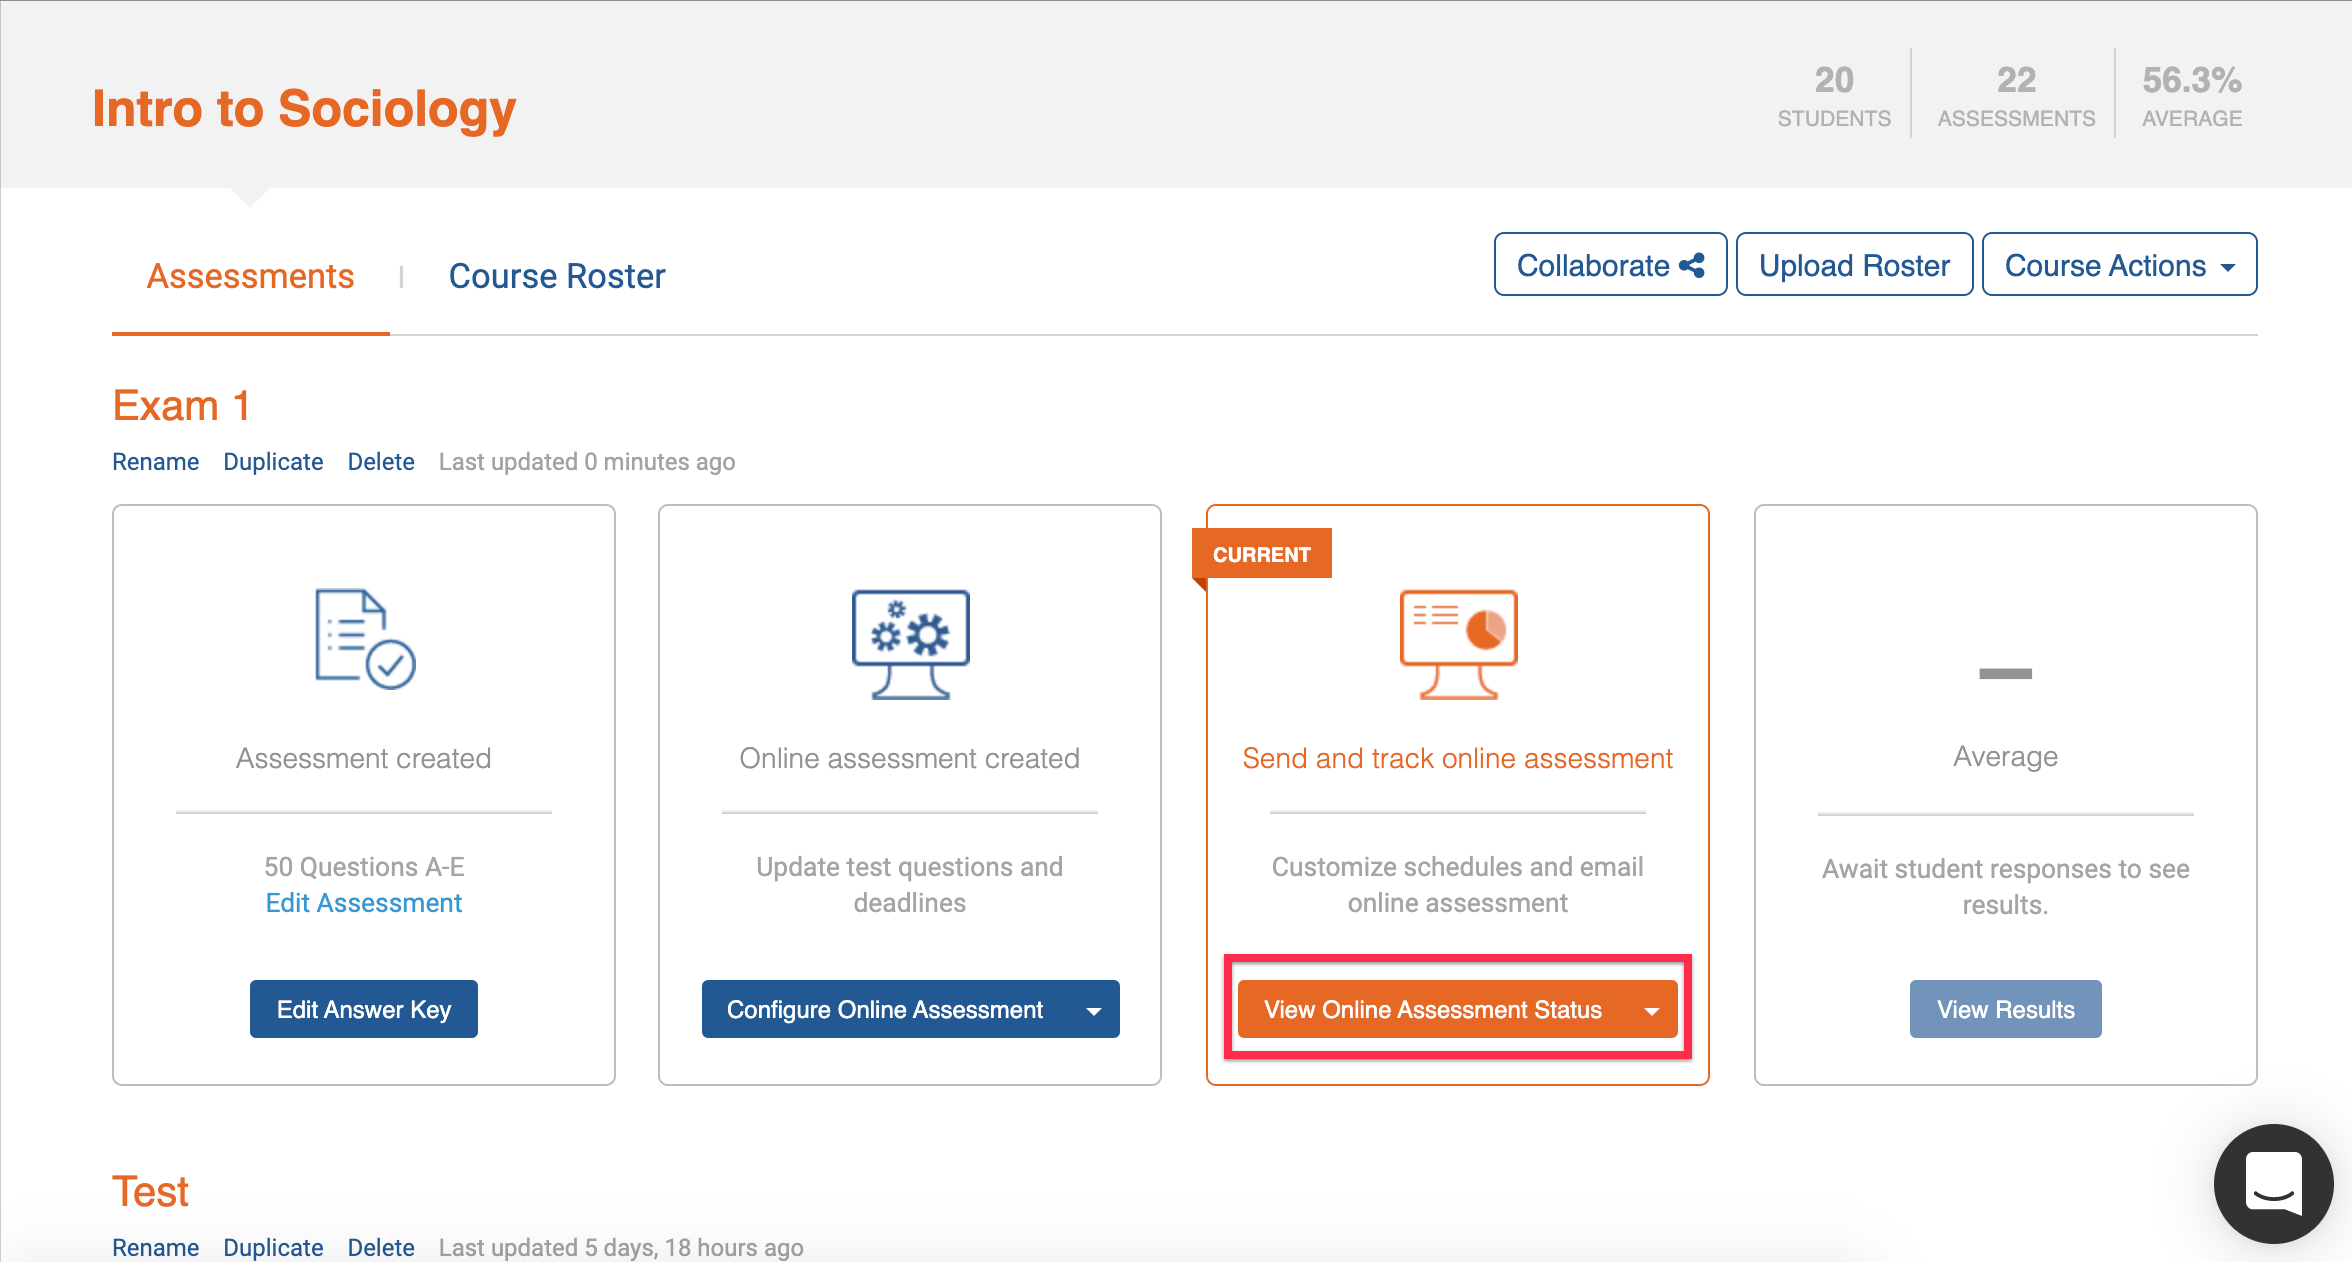 Image: View Online Assessment Status button on Akindi dashboard